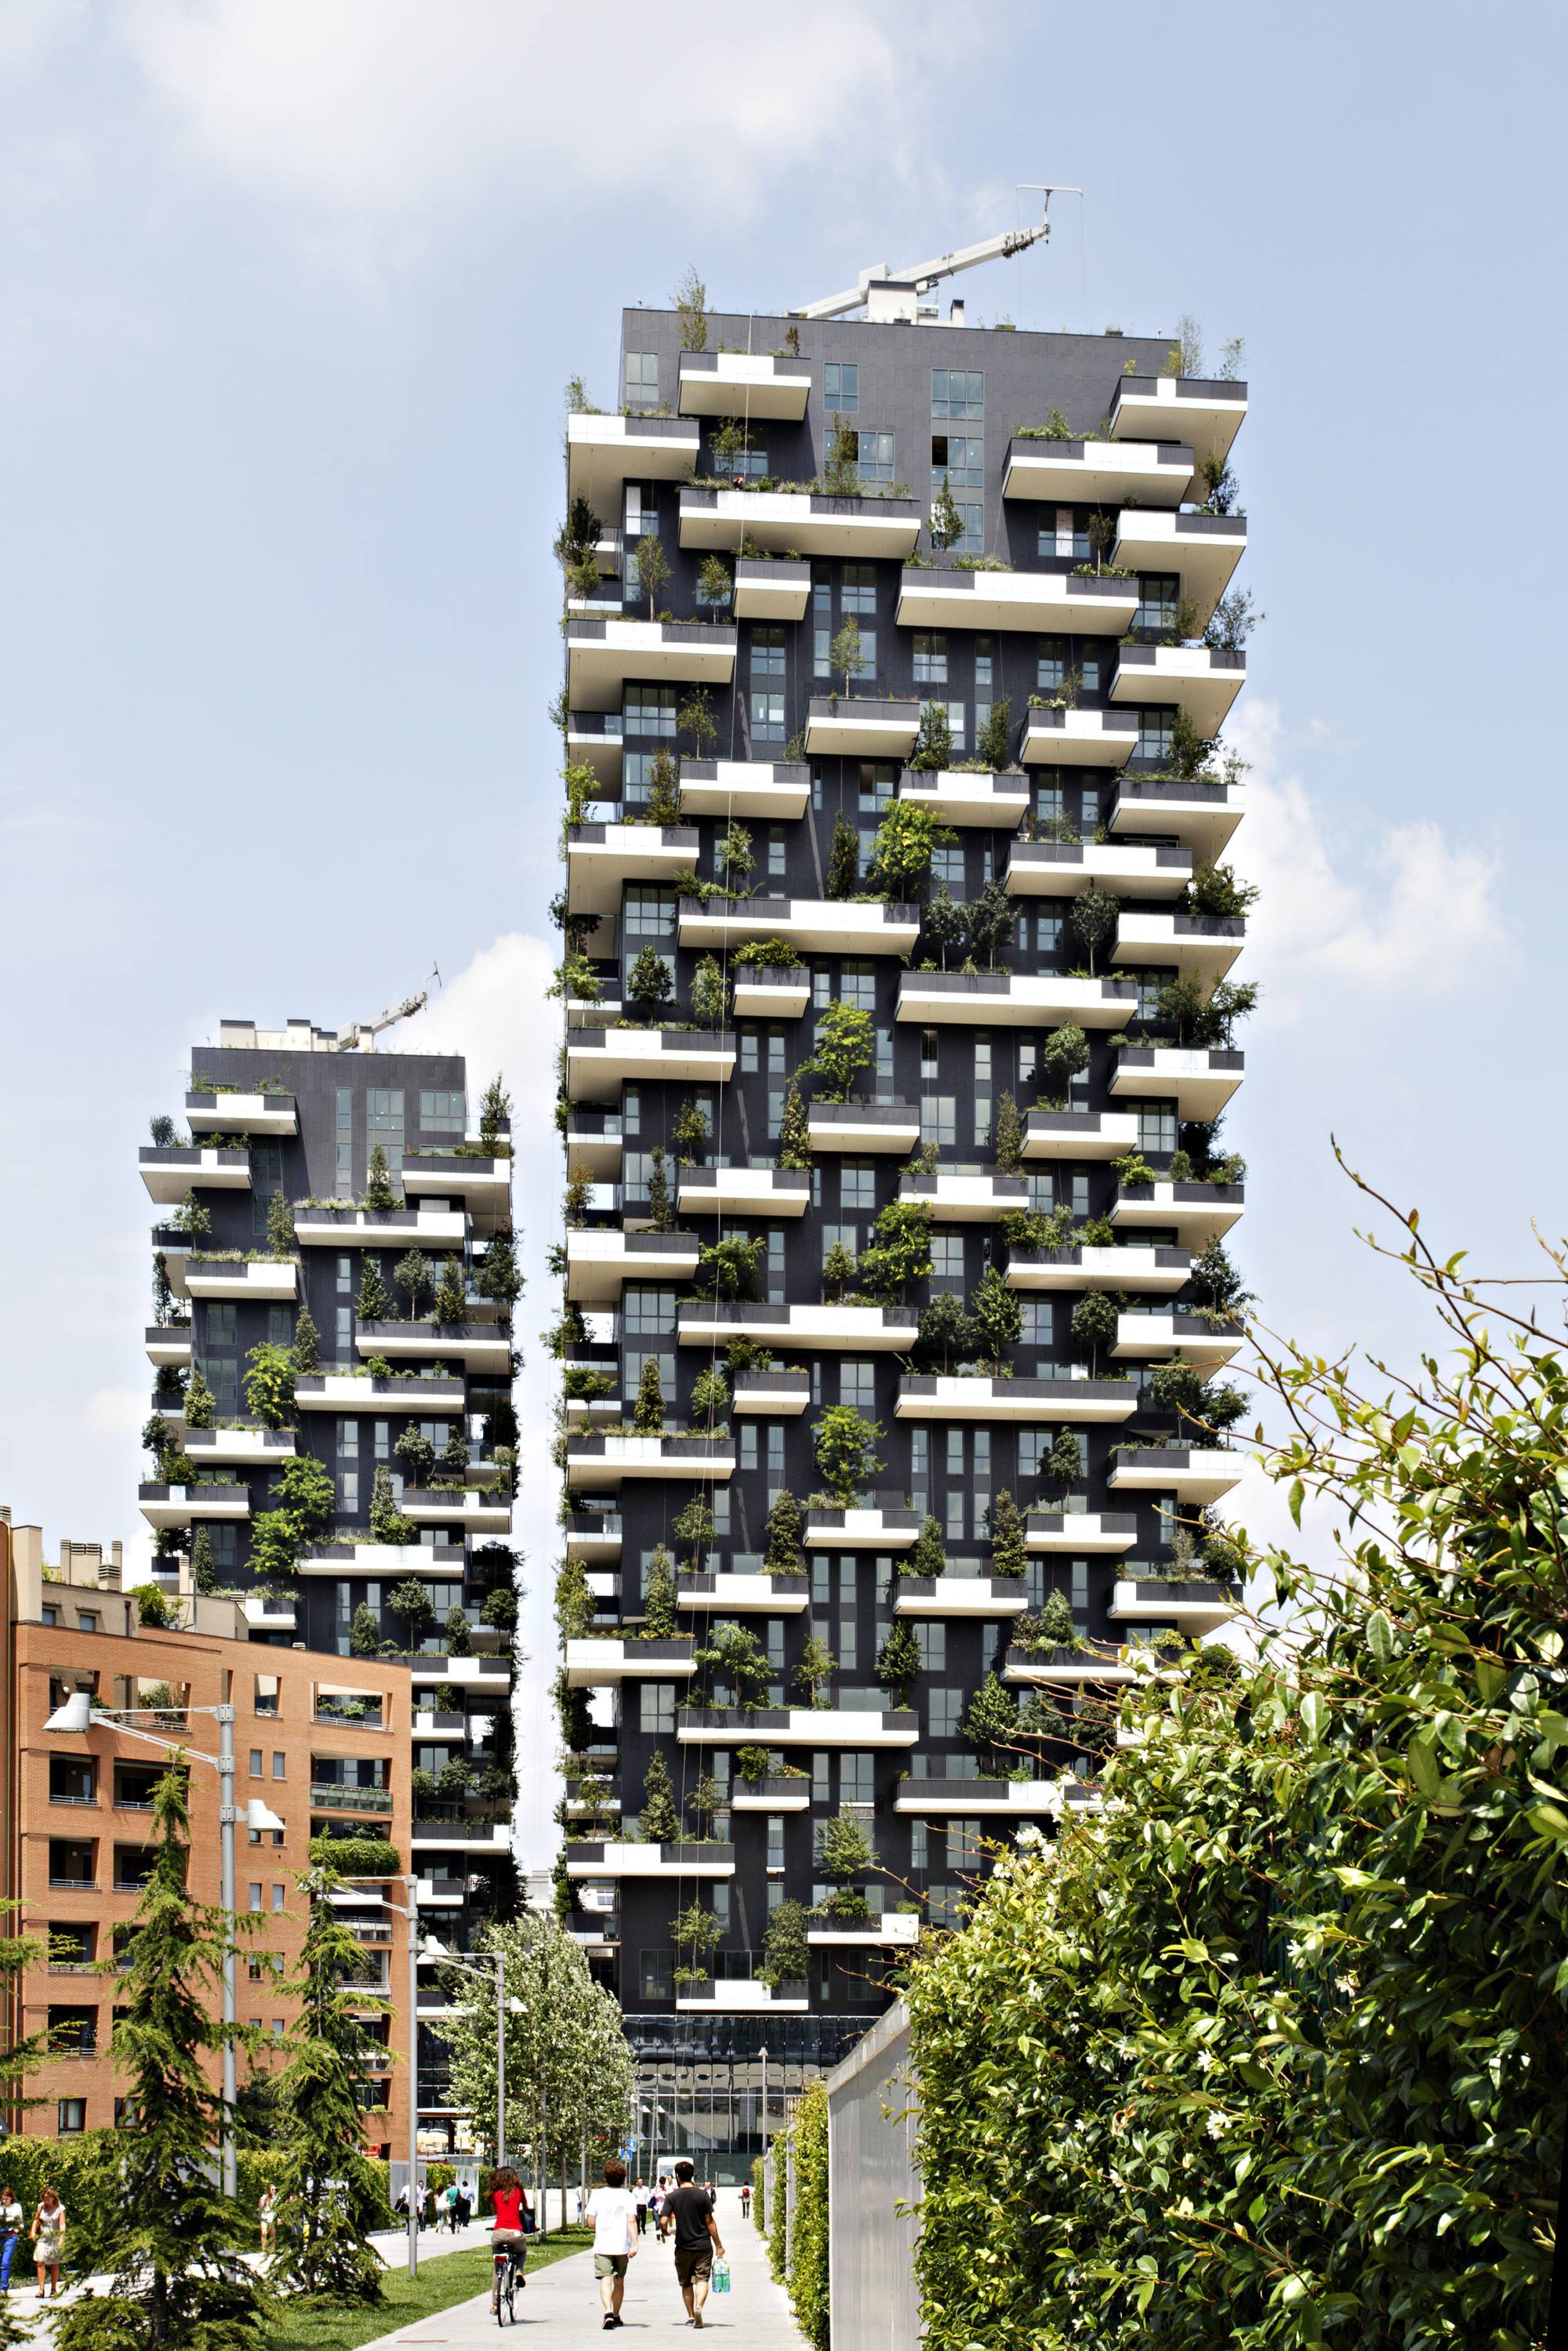 Bosco verticale the world 39 s most beautiful and for Design hotel 6f